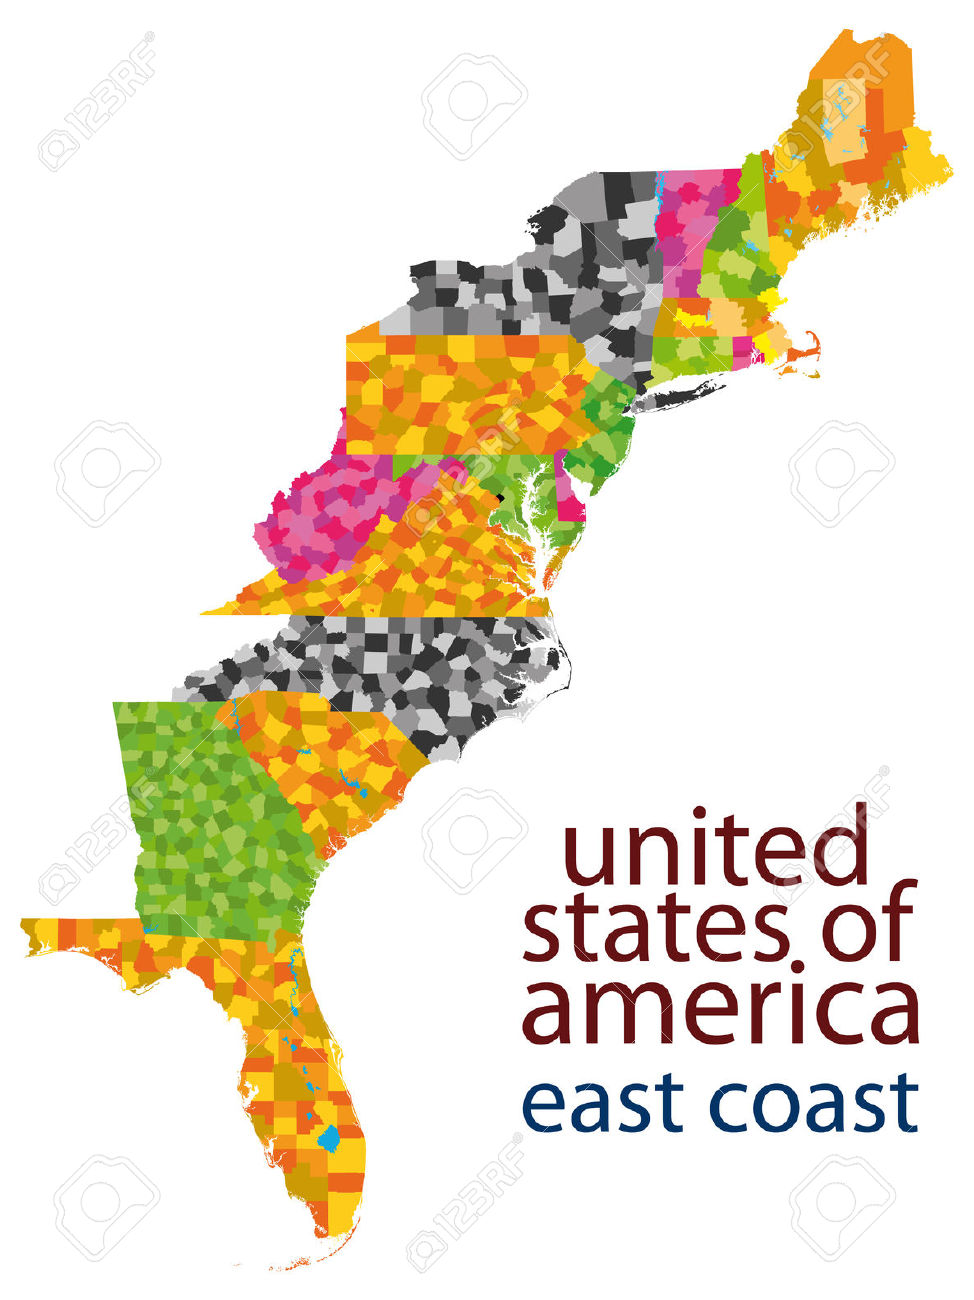 East Coast clipart #6, Download drawings